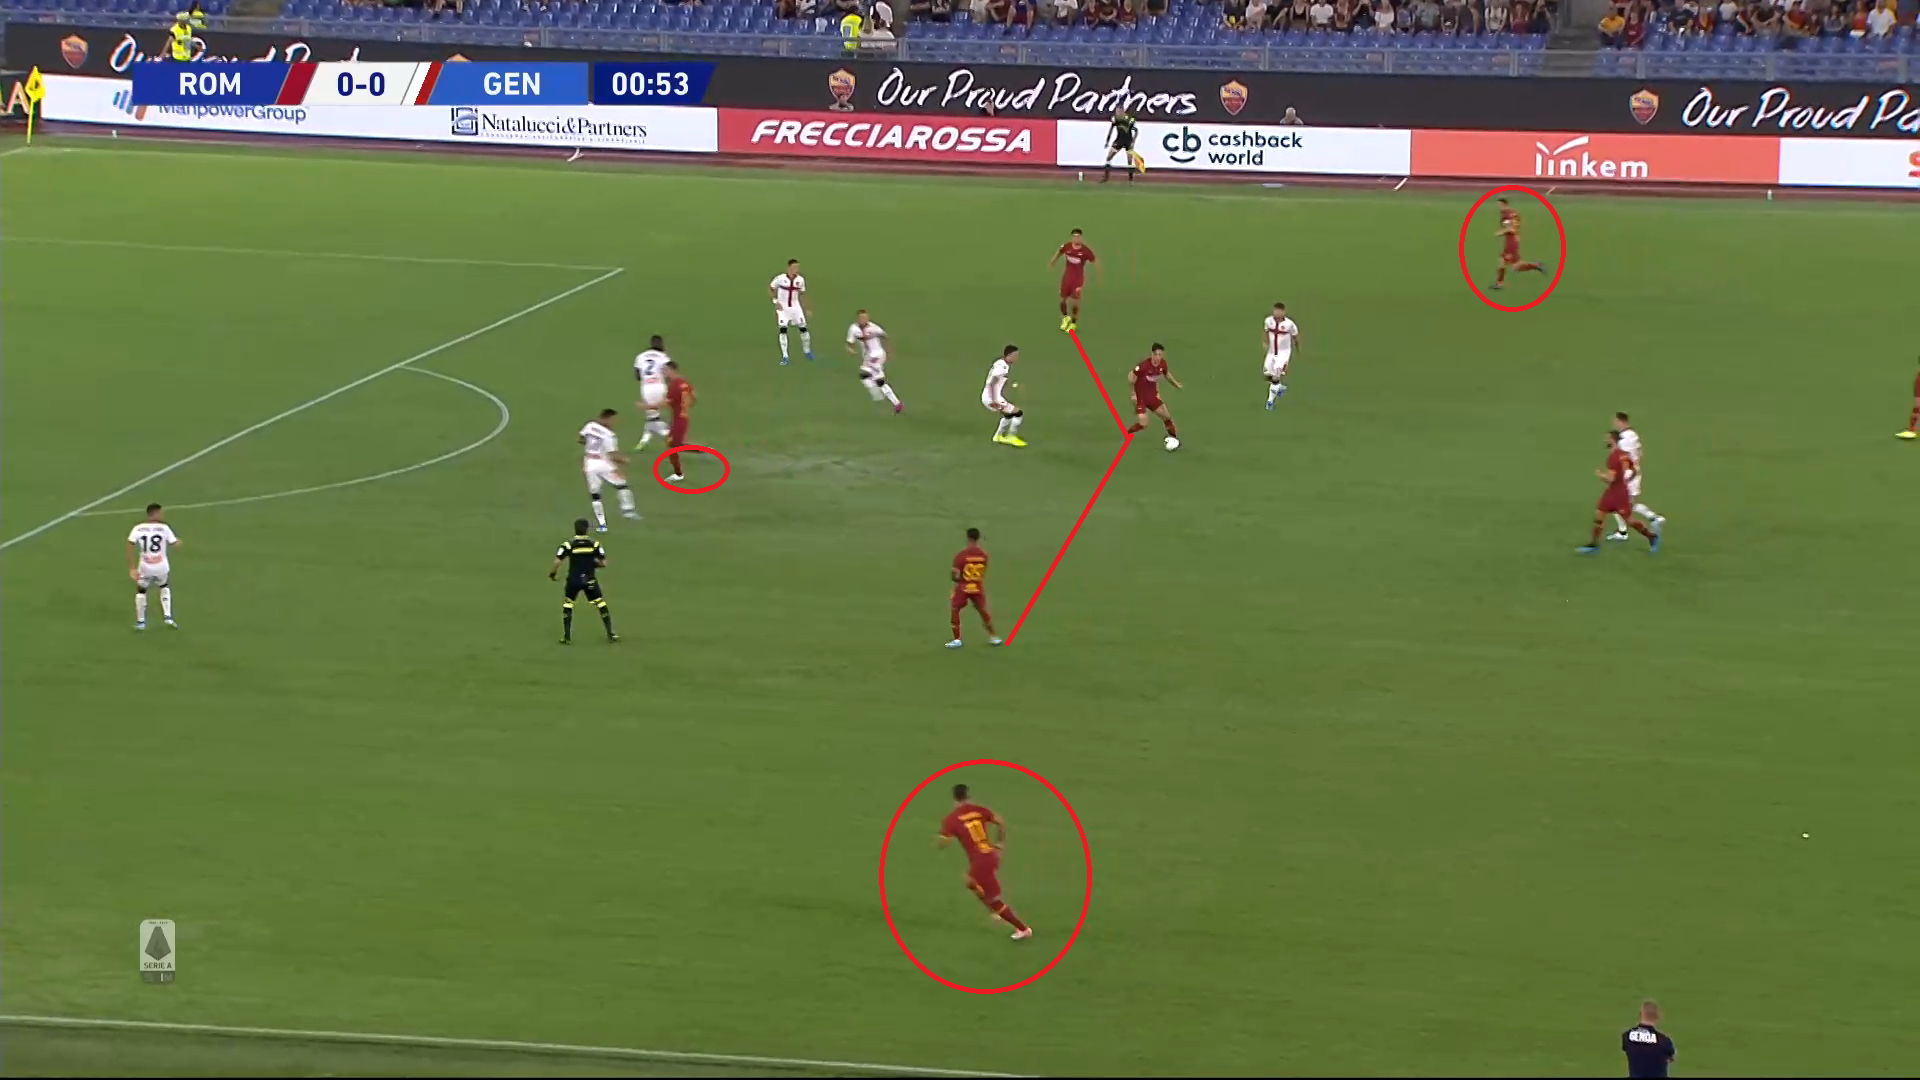 Serie A 2019/20: Roma Vs Genoa - tactical analysis tactics